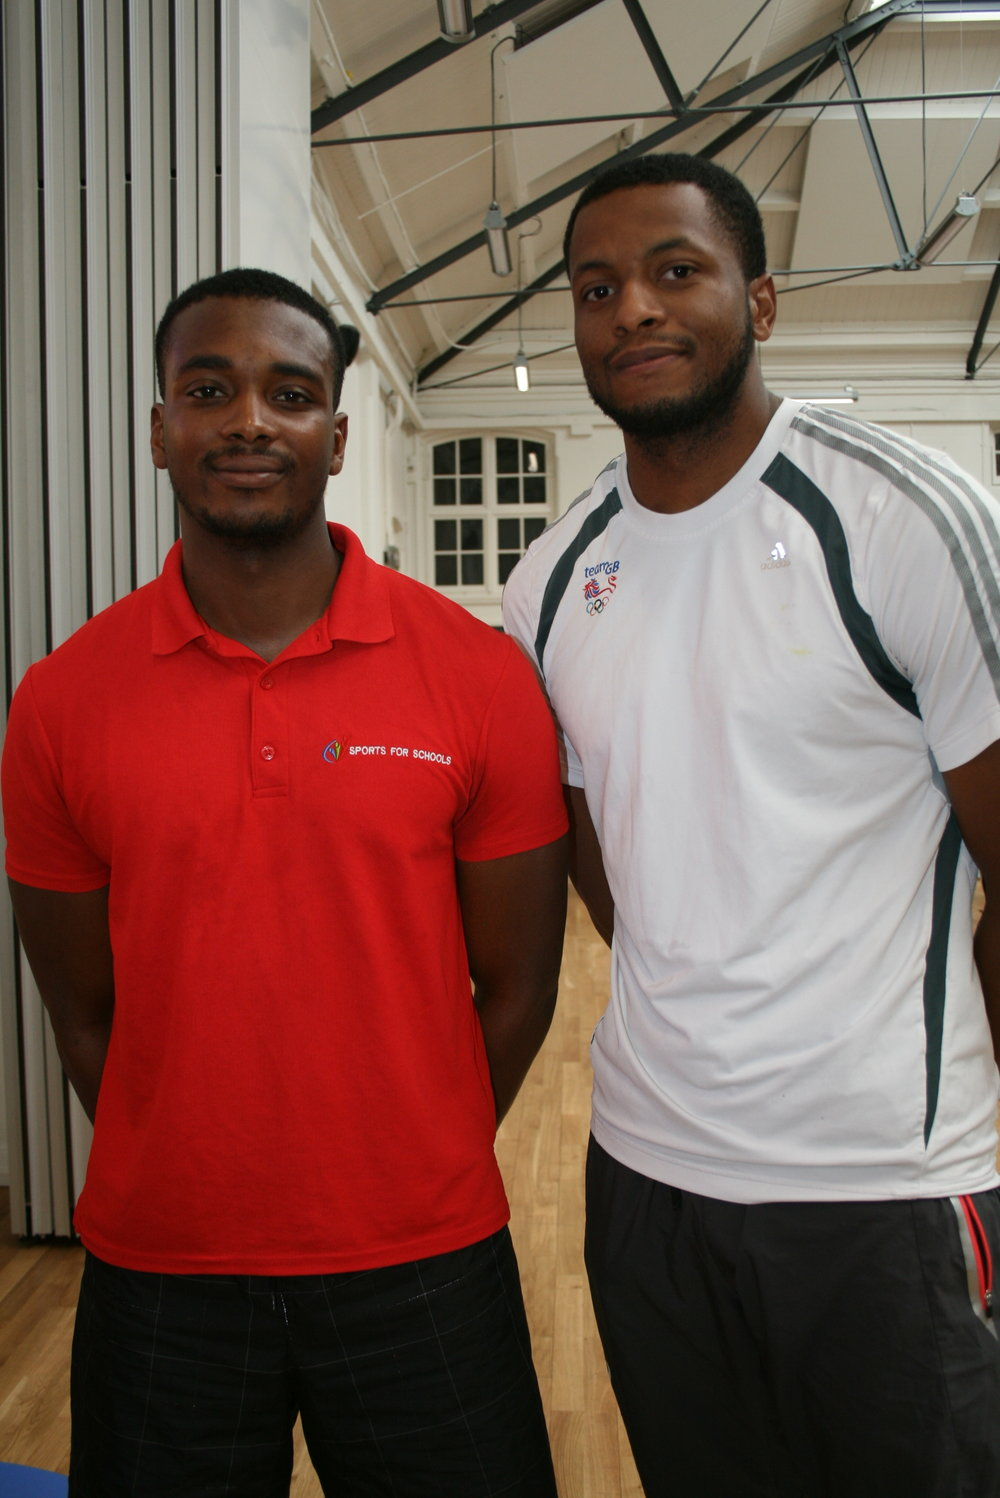 Nathan Fox and Omar the Sportivater visiting Earlsmead